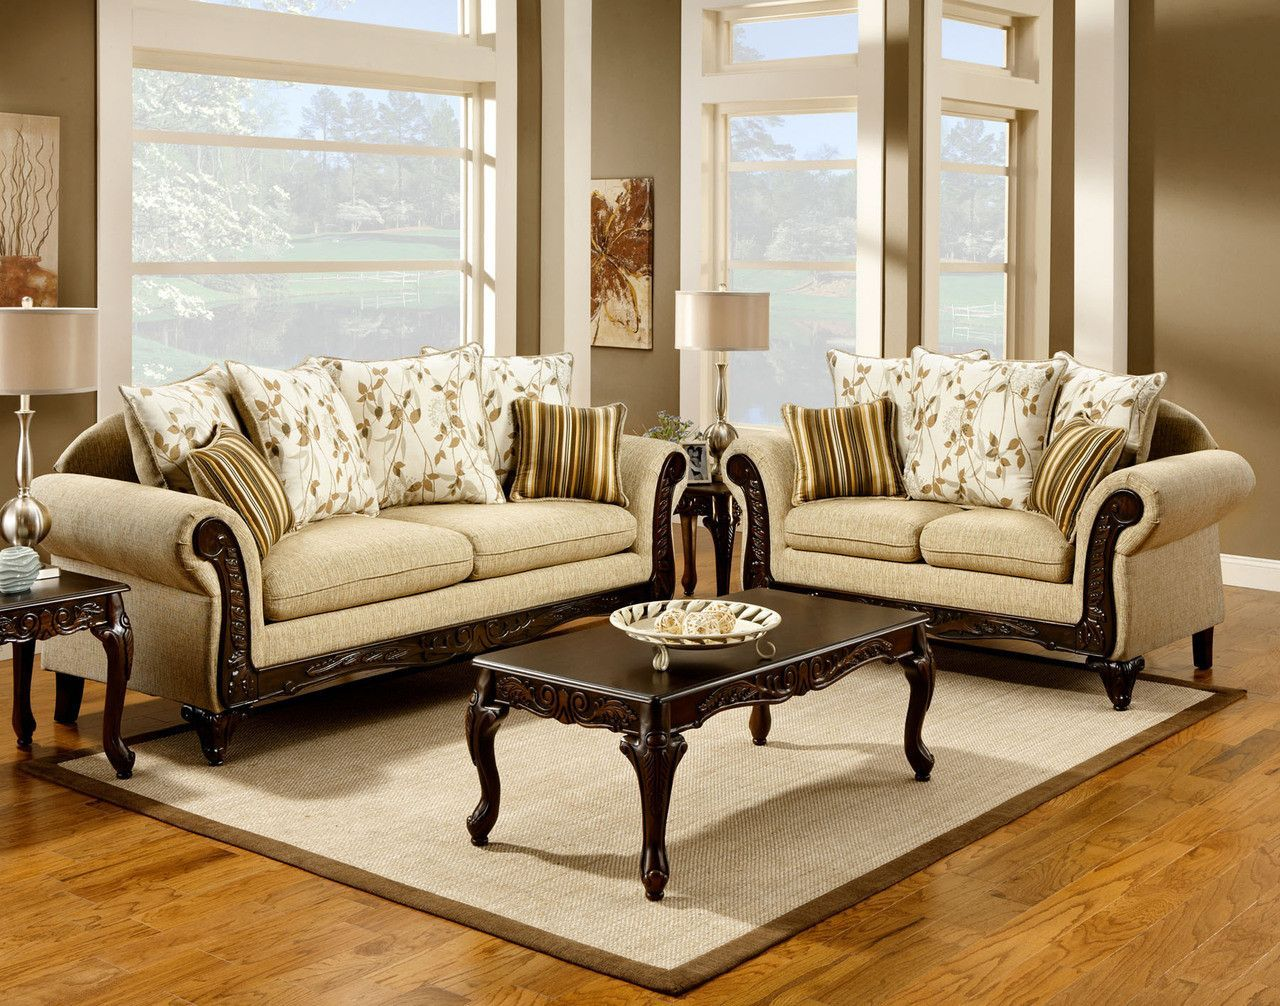 Sm7435 Sofa Love Seat Set Products Pinterest # Muebles Victorianos Baratos